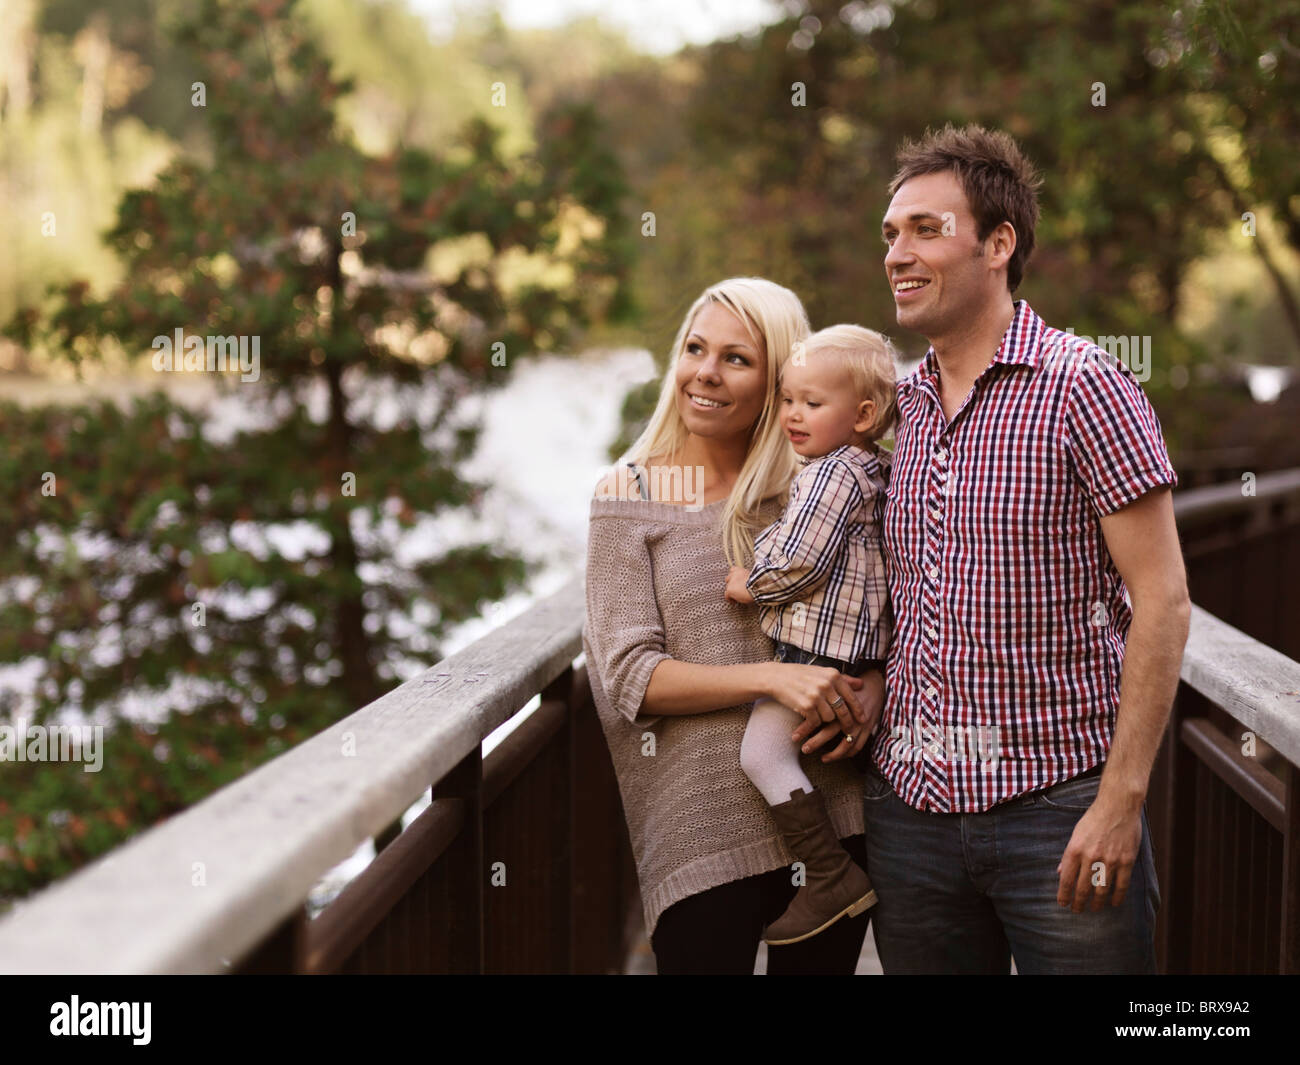 Happy smiling young parents and a two year old girl enjoying the nature view from a bridge. Ontario, Canada. - Stock Image